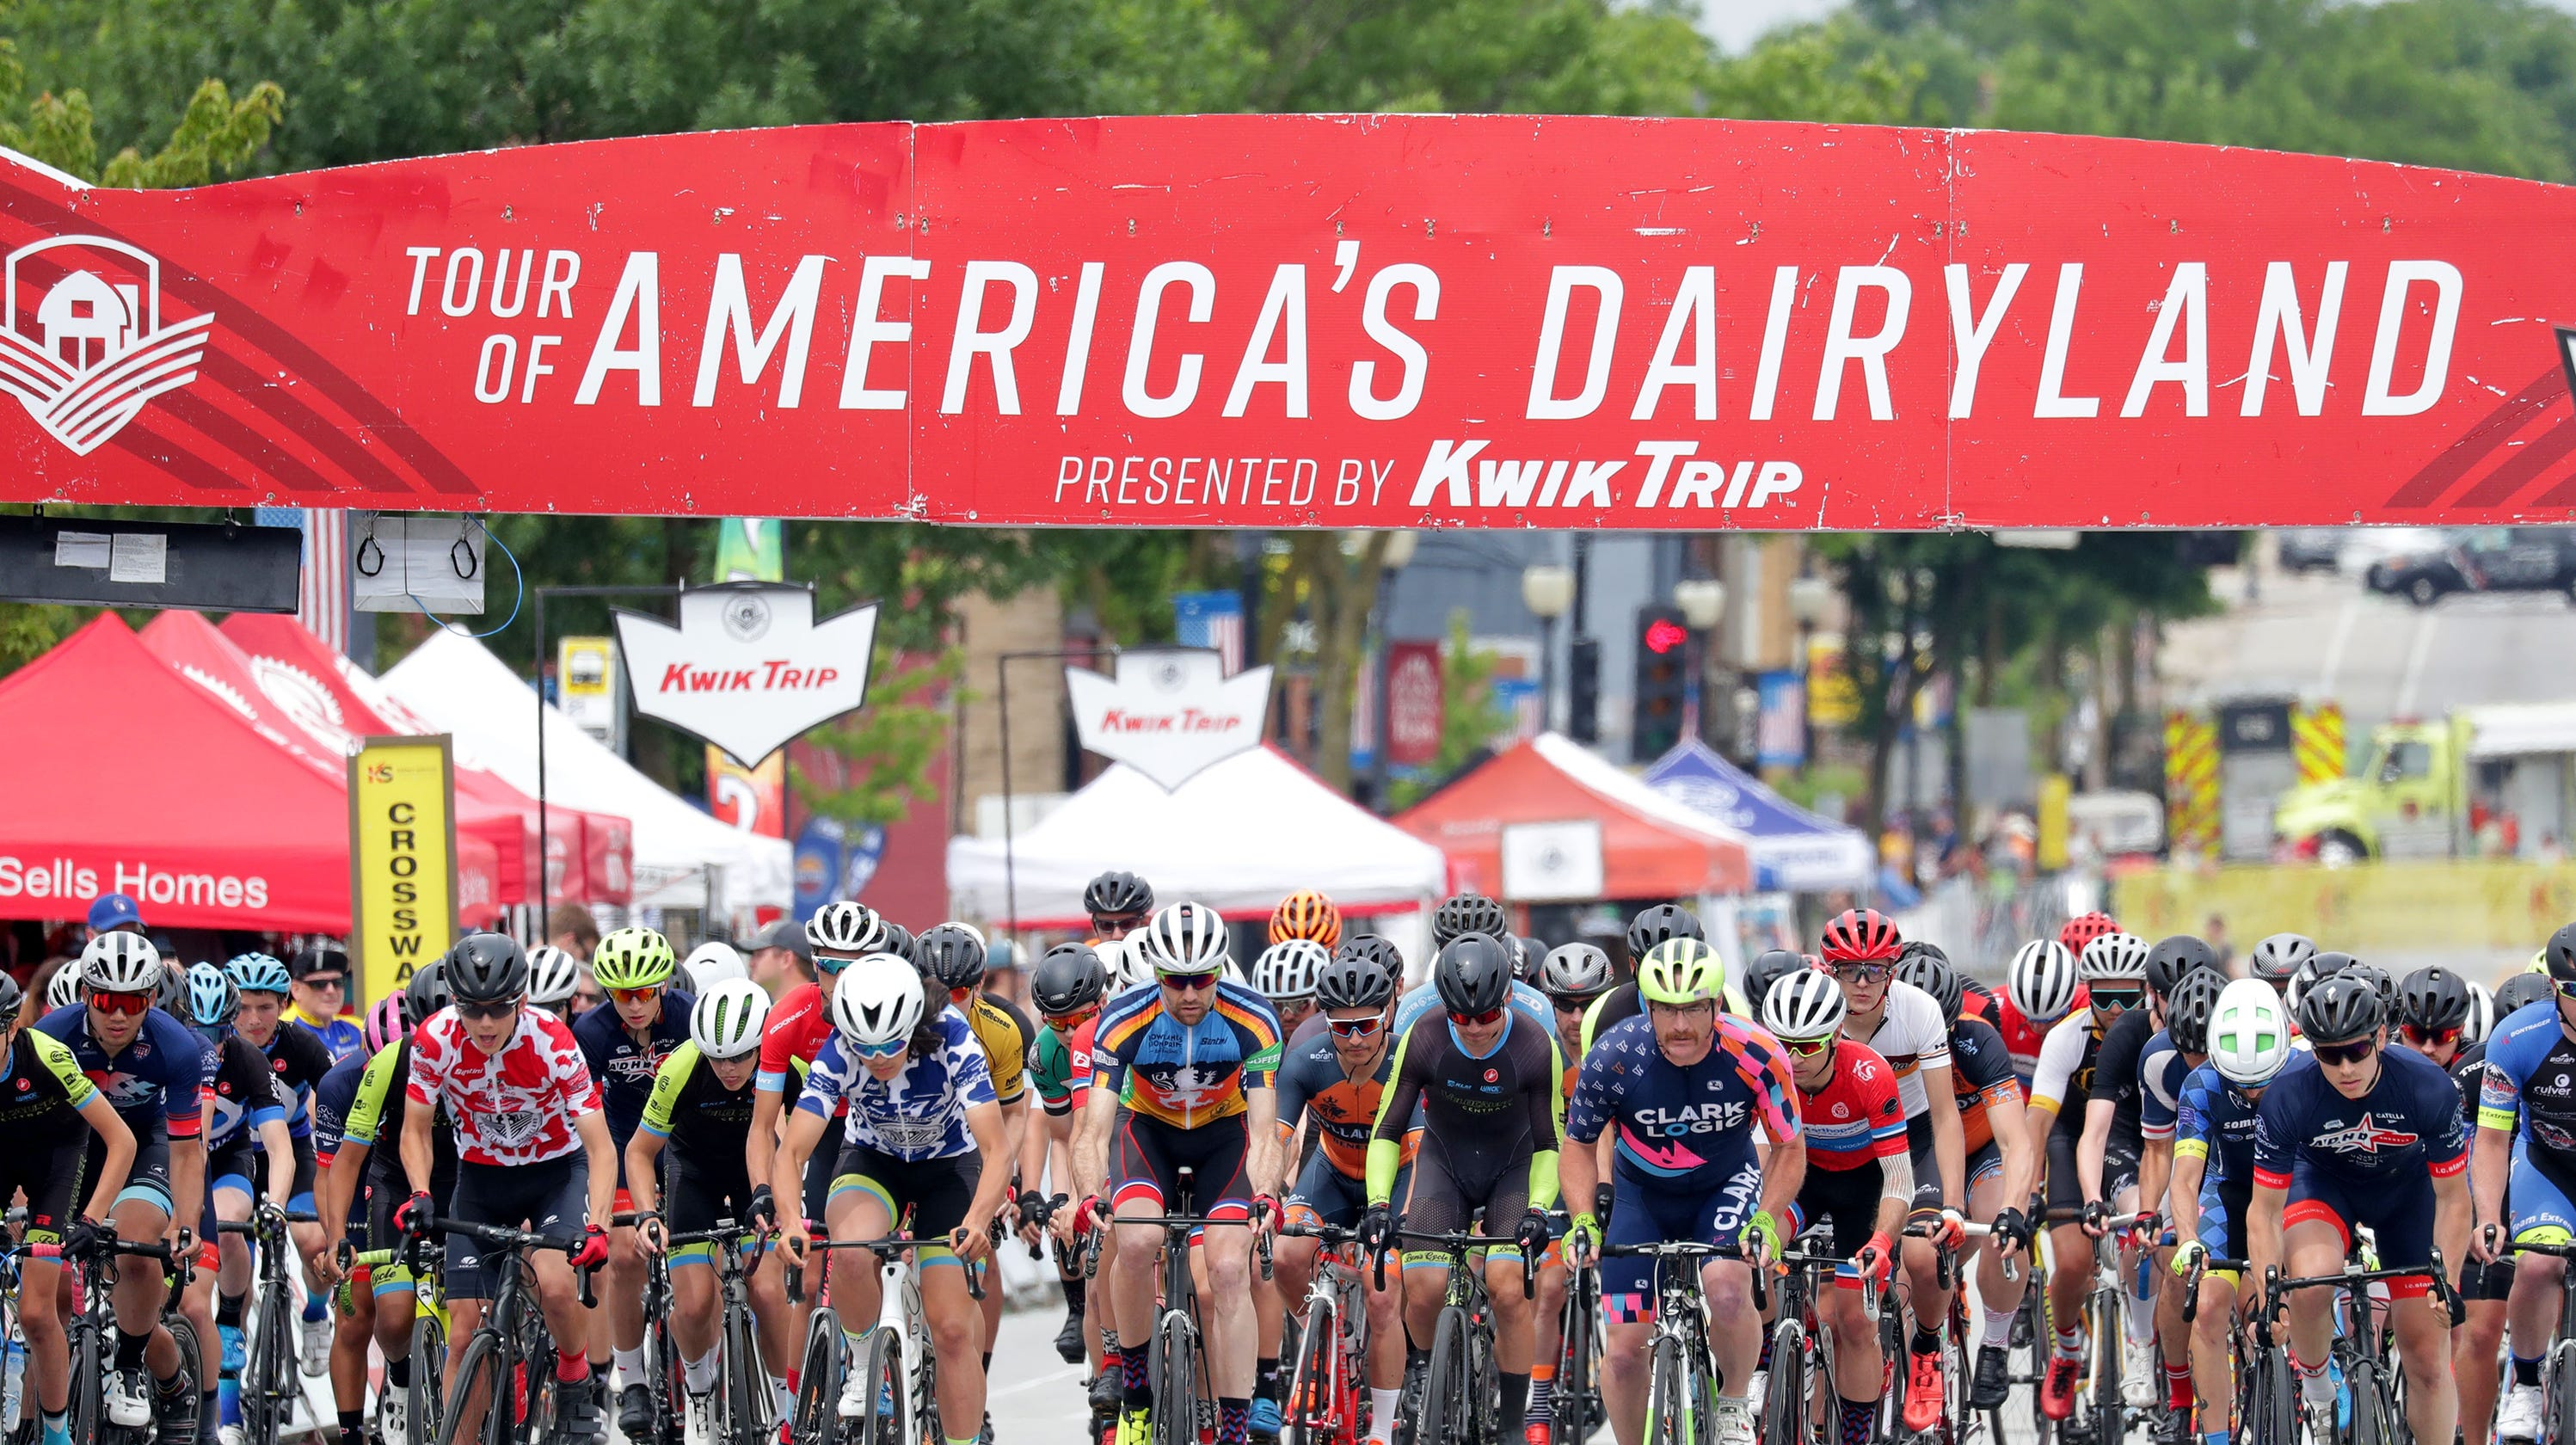 The Tour of America's Dairyland bike racing series is back this summer with several Milwaukee area stops